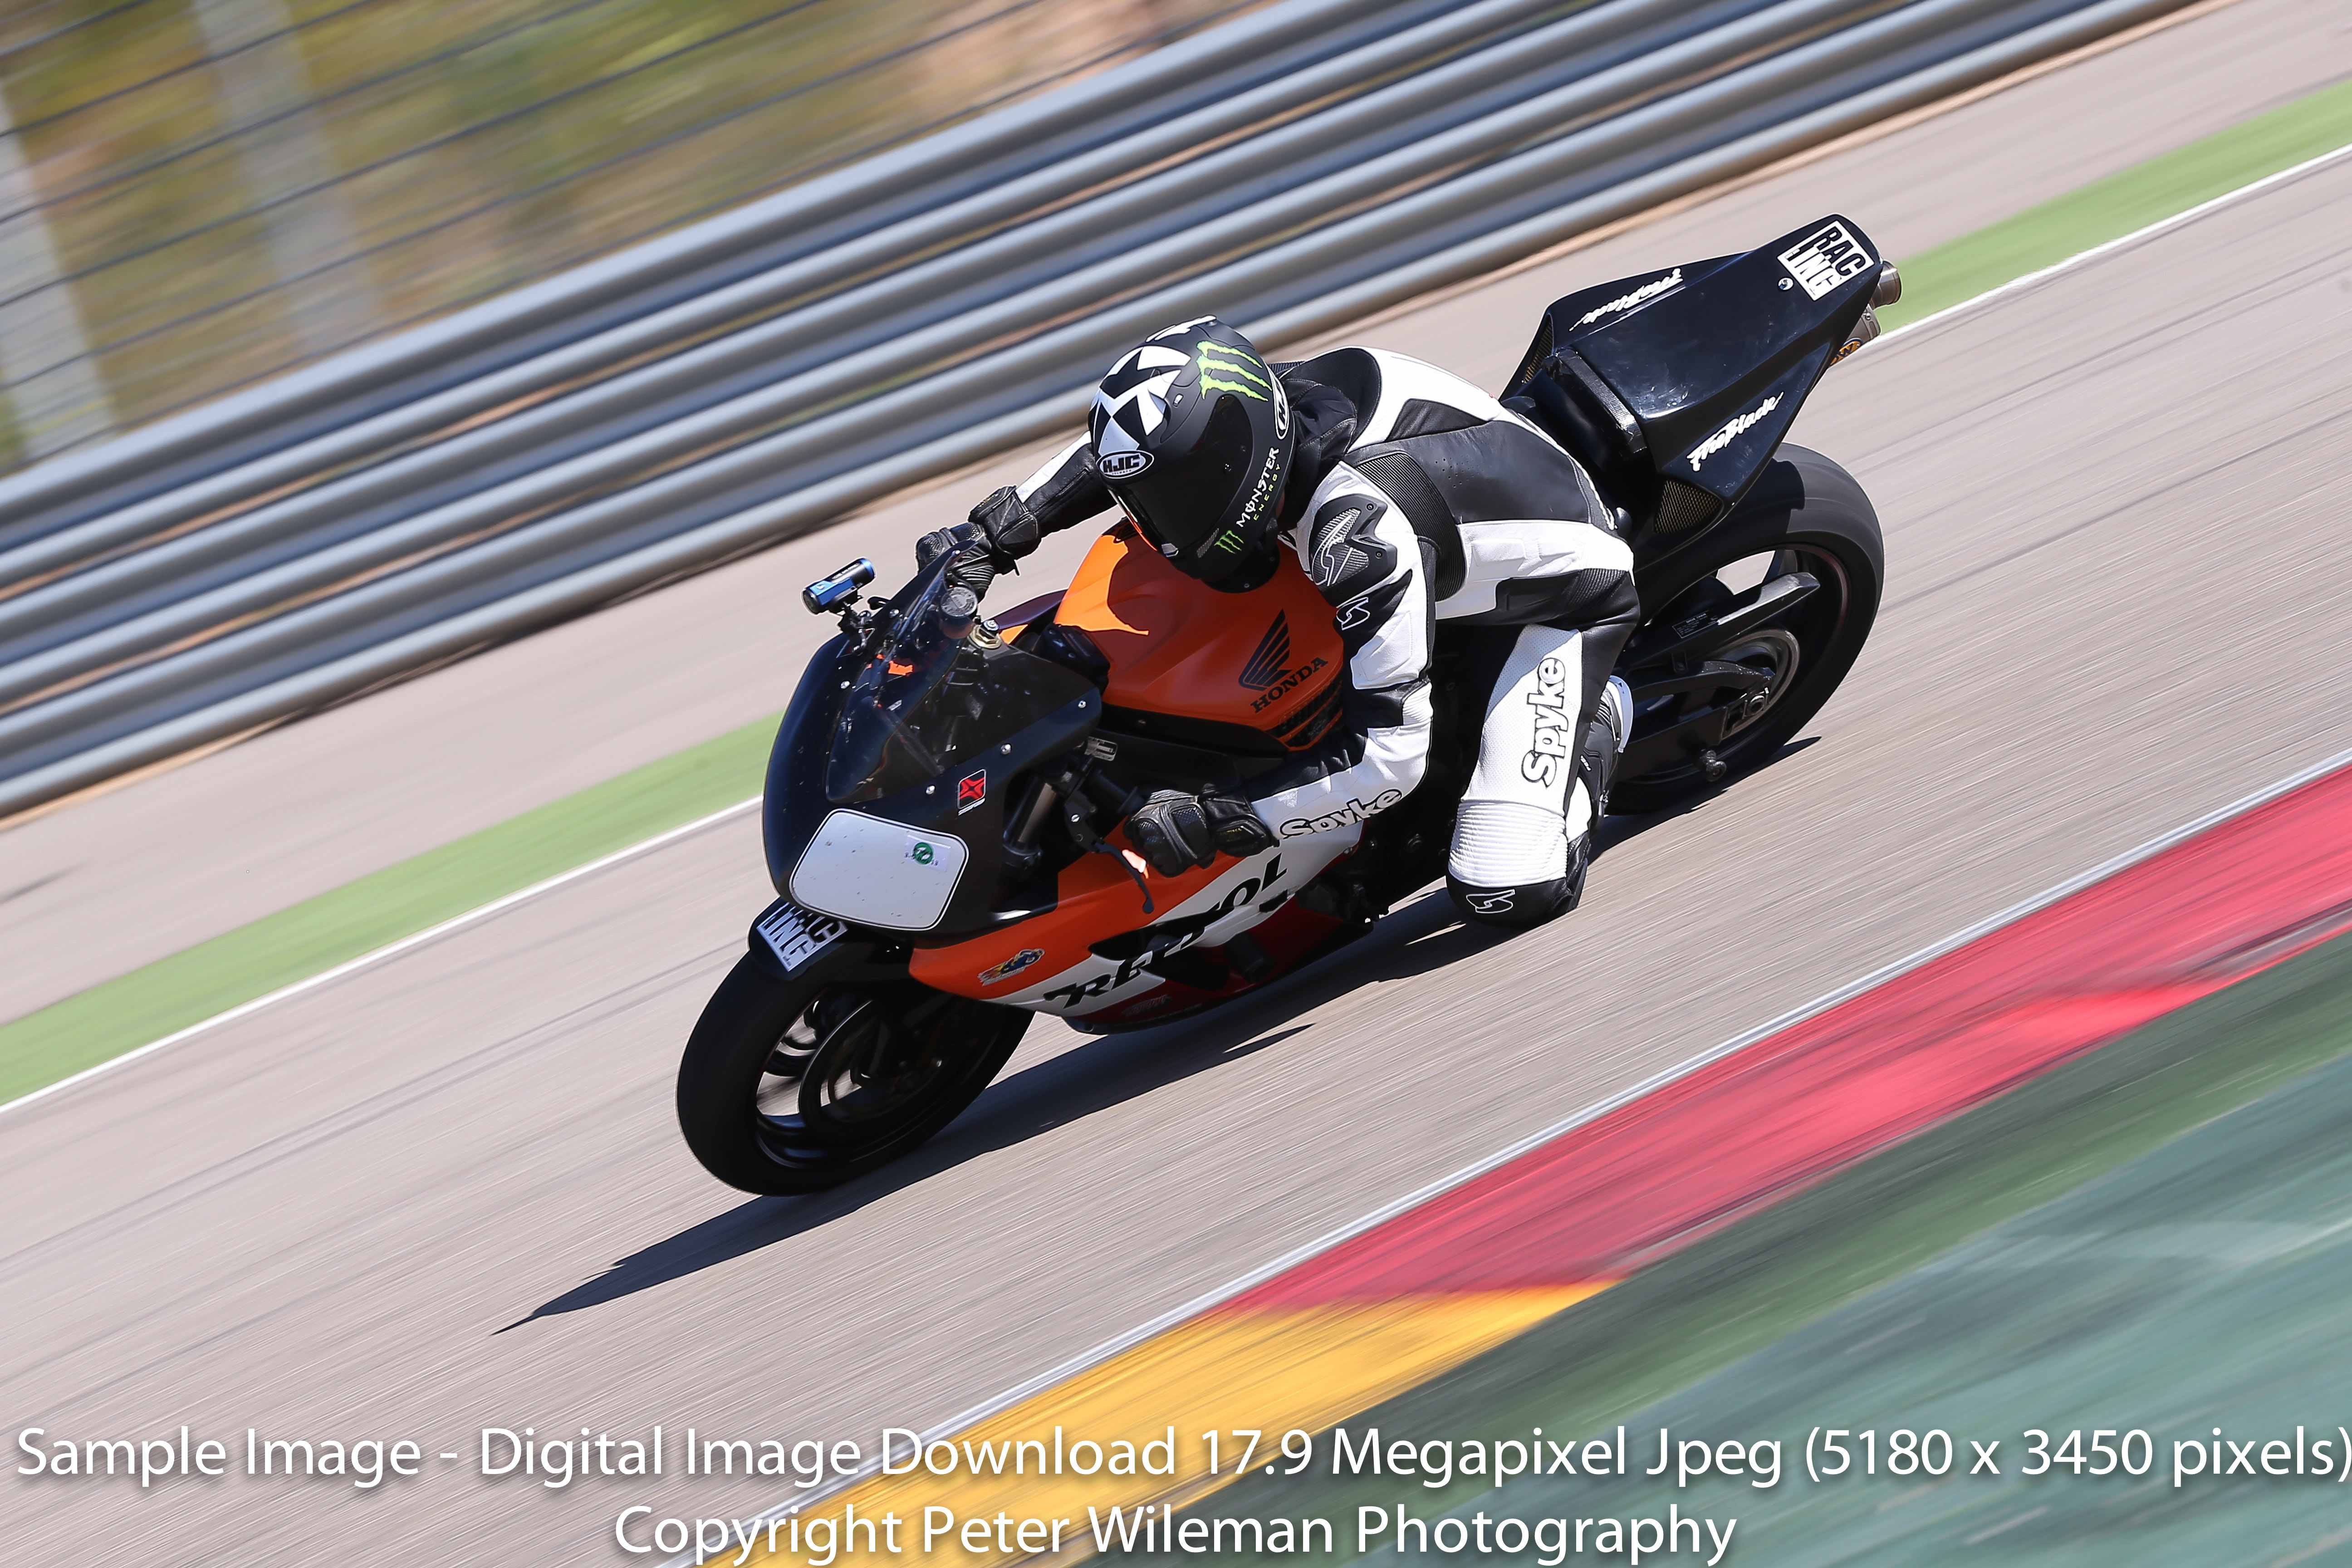 06-10-2012 Aragon no limits trackday - photos by peter wileman